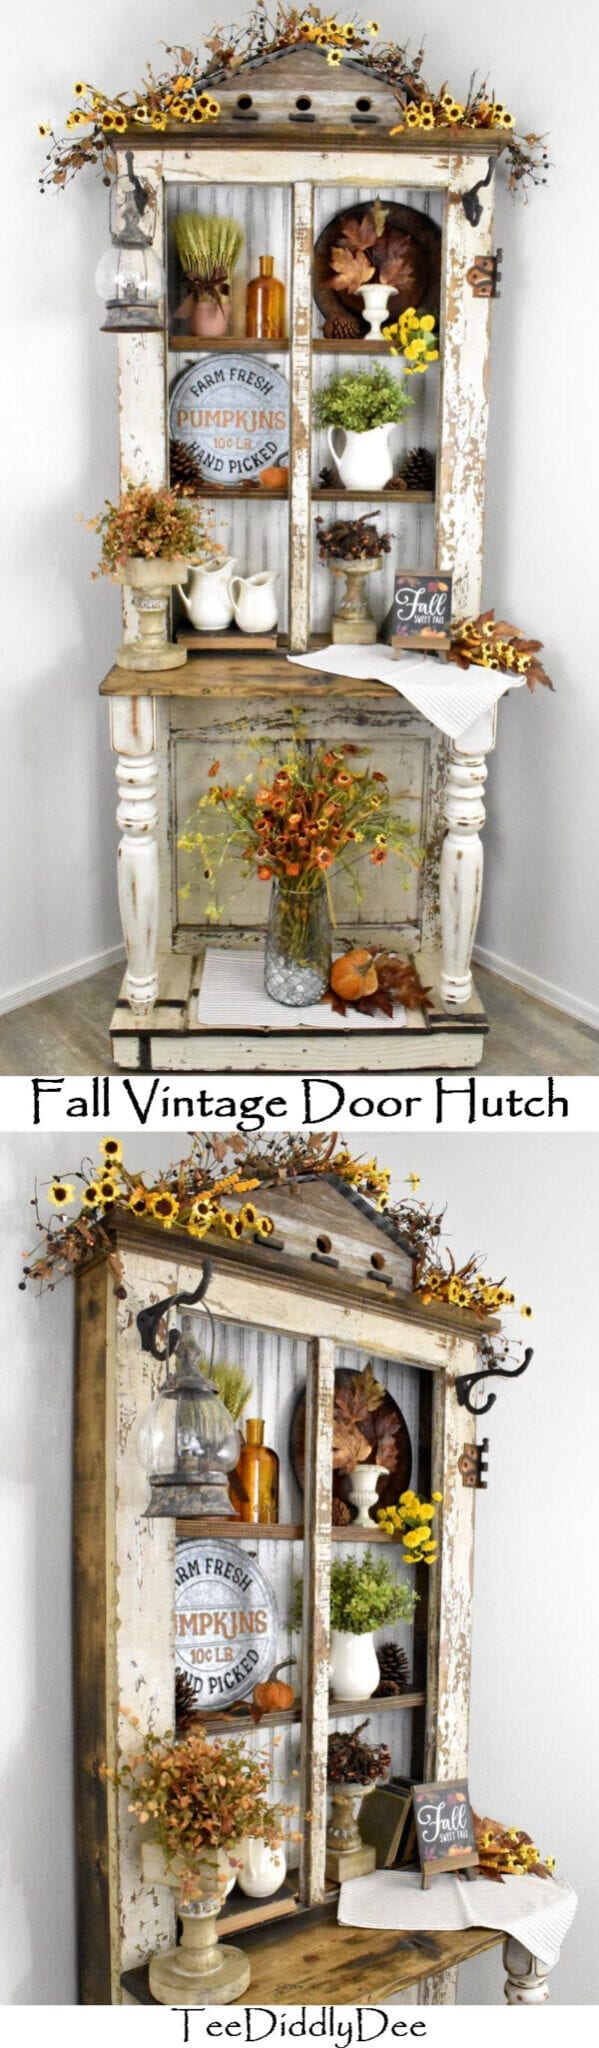 Fall Vintage Door Hutch Antique Repurposed Hall Tree Decor Hall Tree